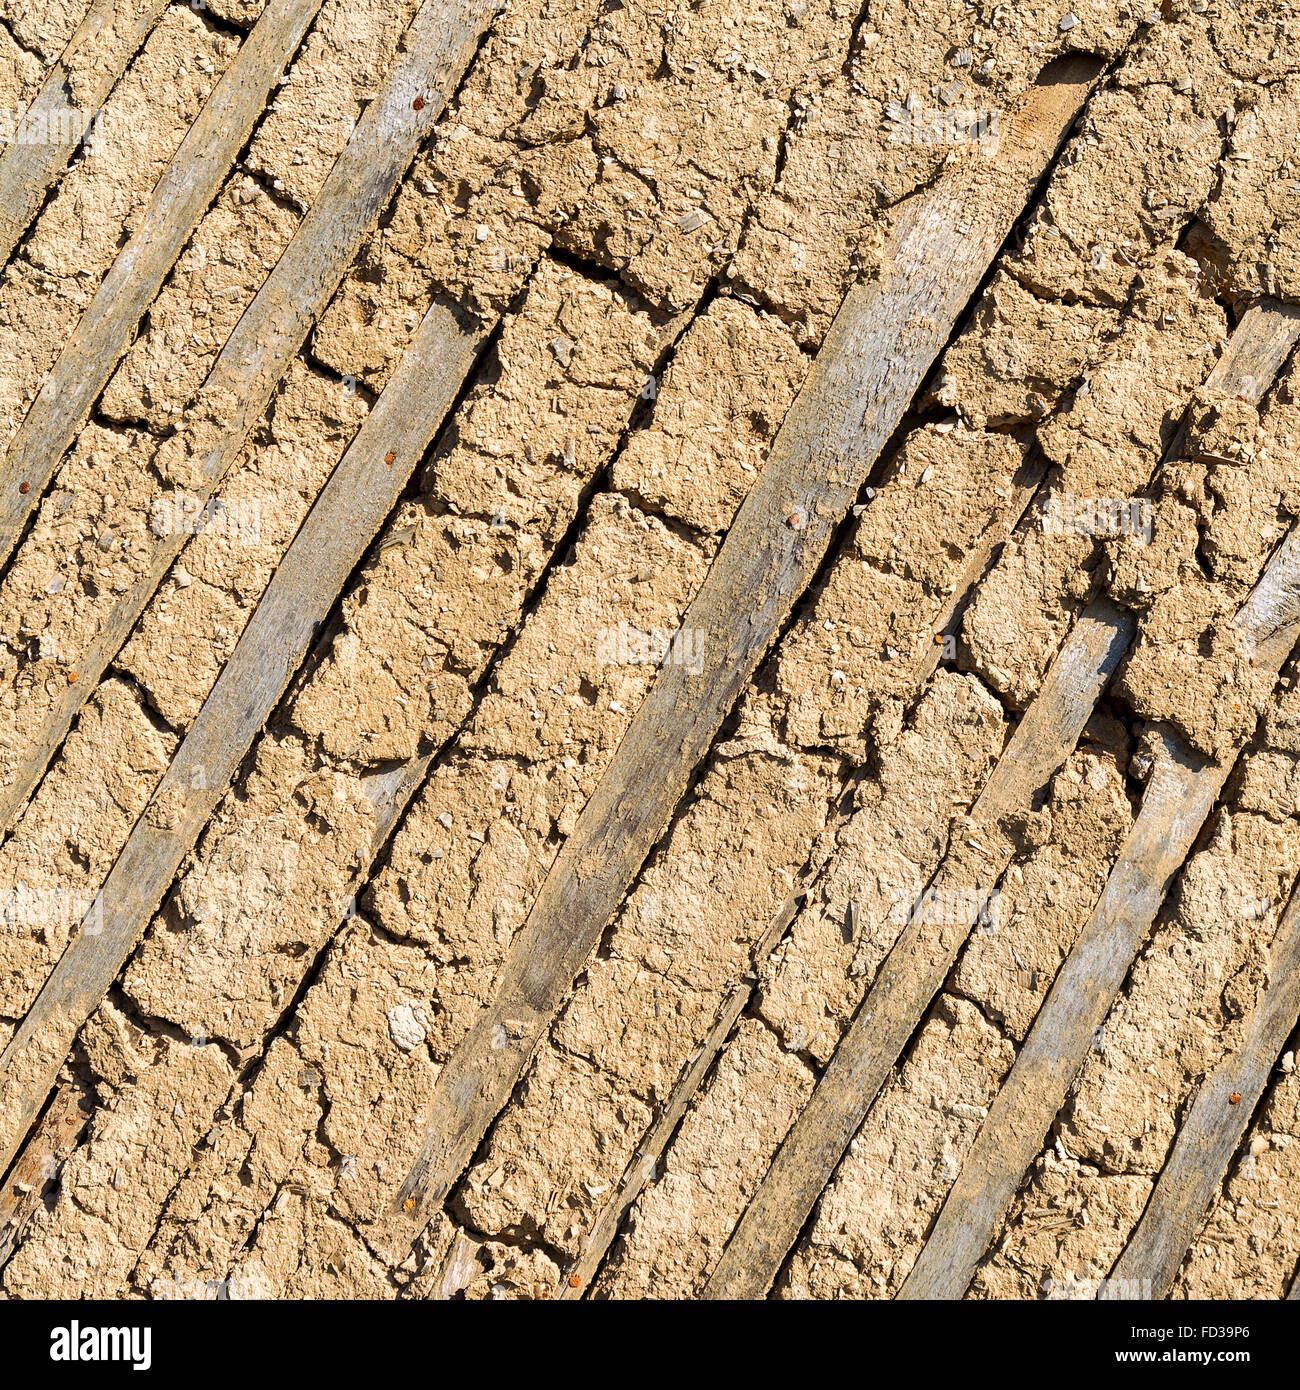 Texture of the old adobe walls, old plaster, retro construction technology of the 18th century country house - Stock Image